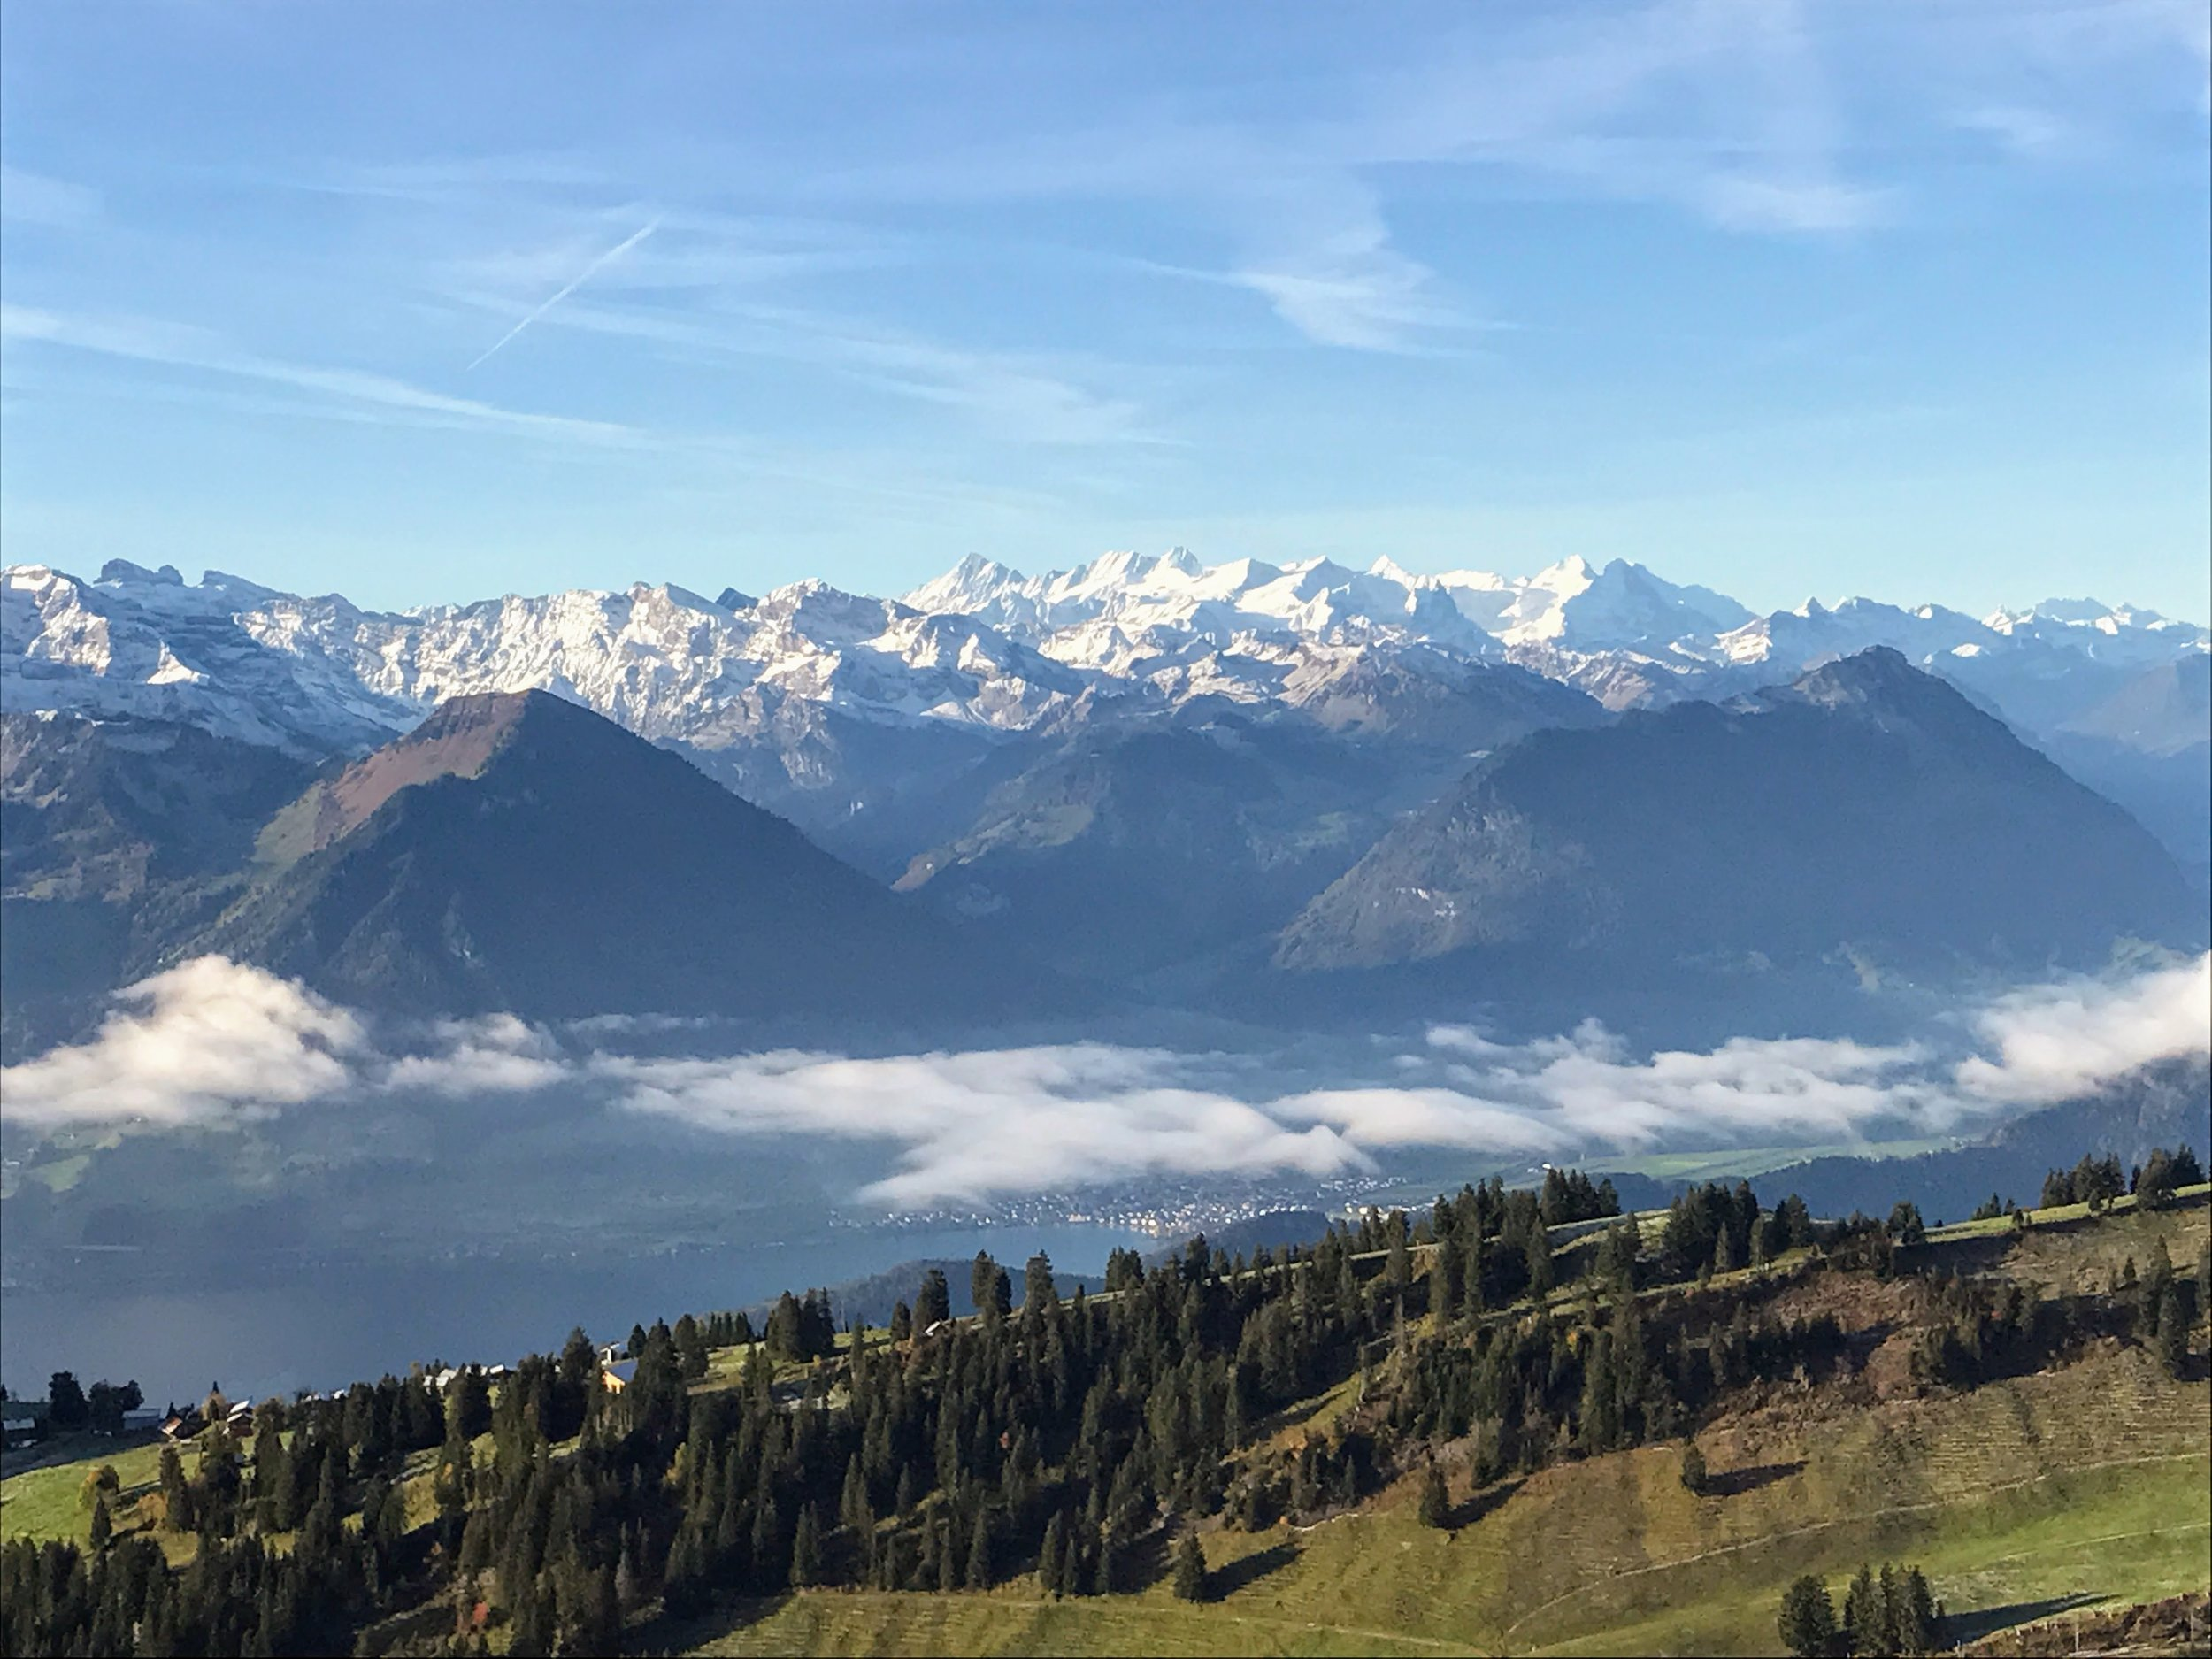 View of the Alps from Mt. Rigi summit